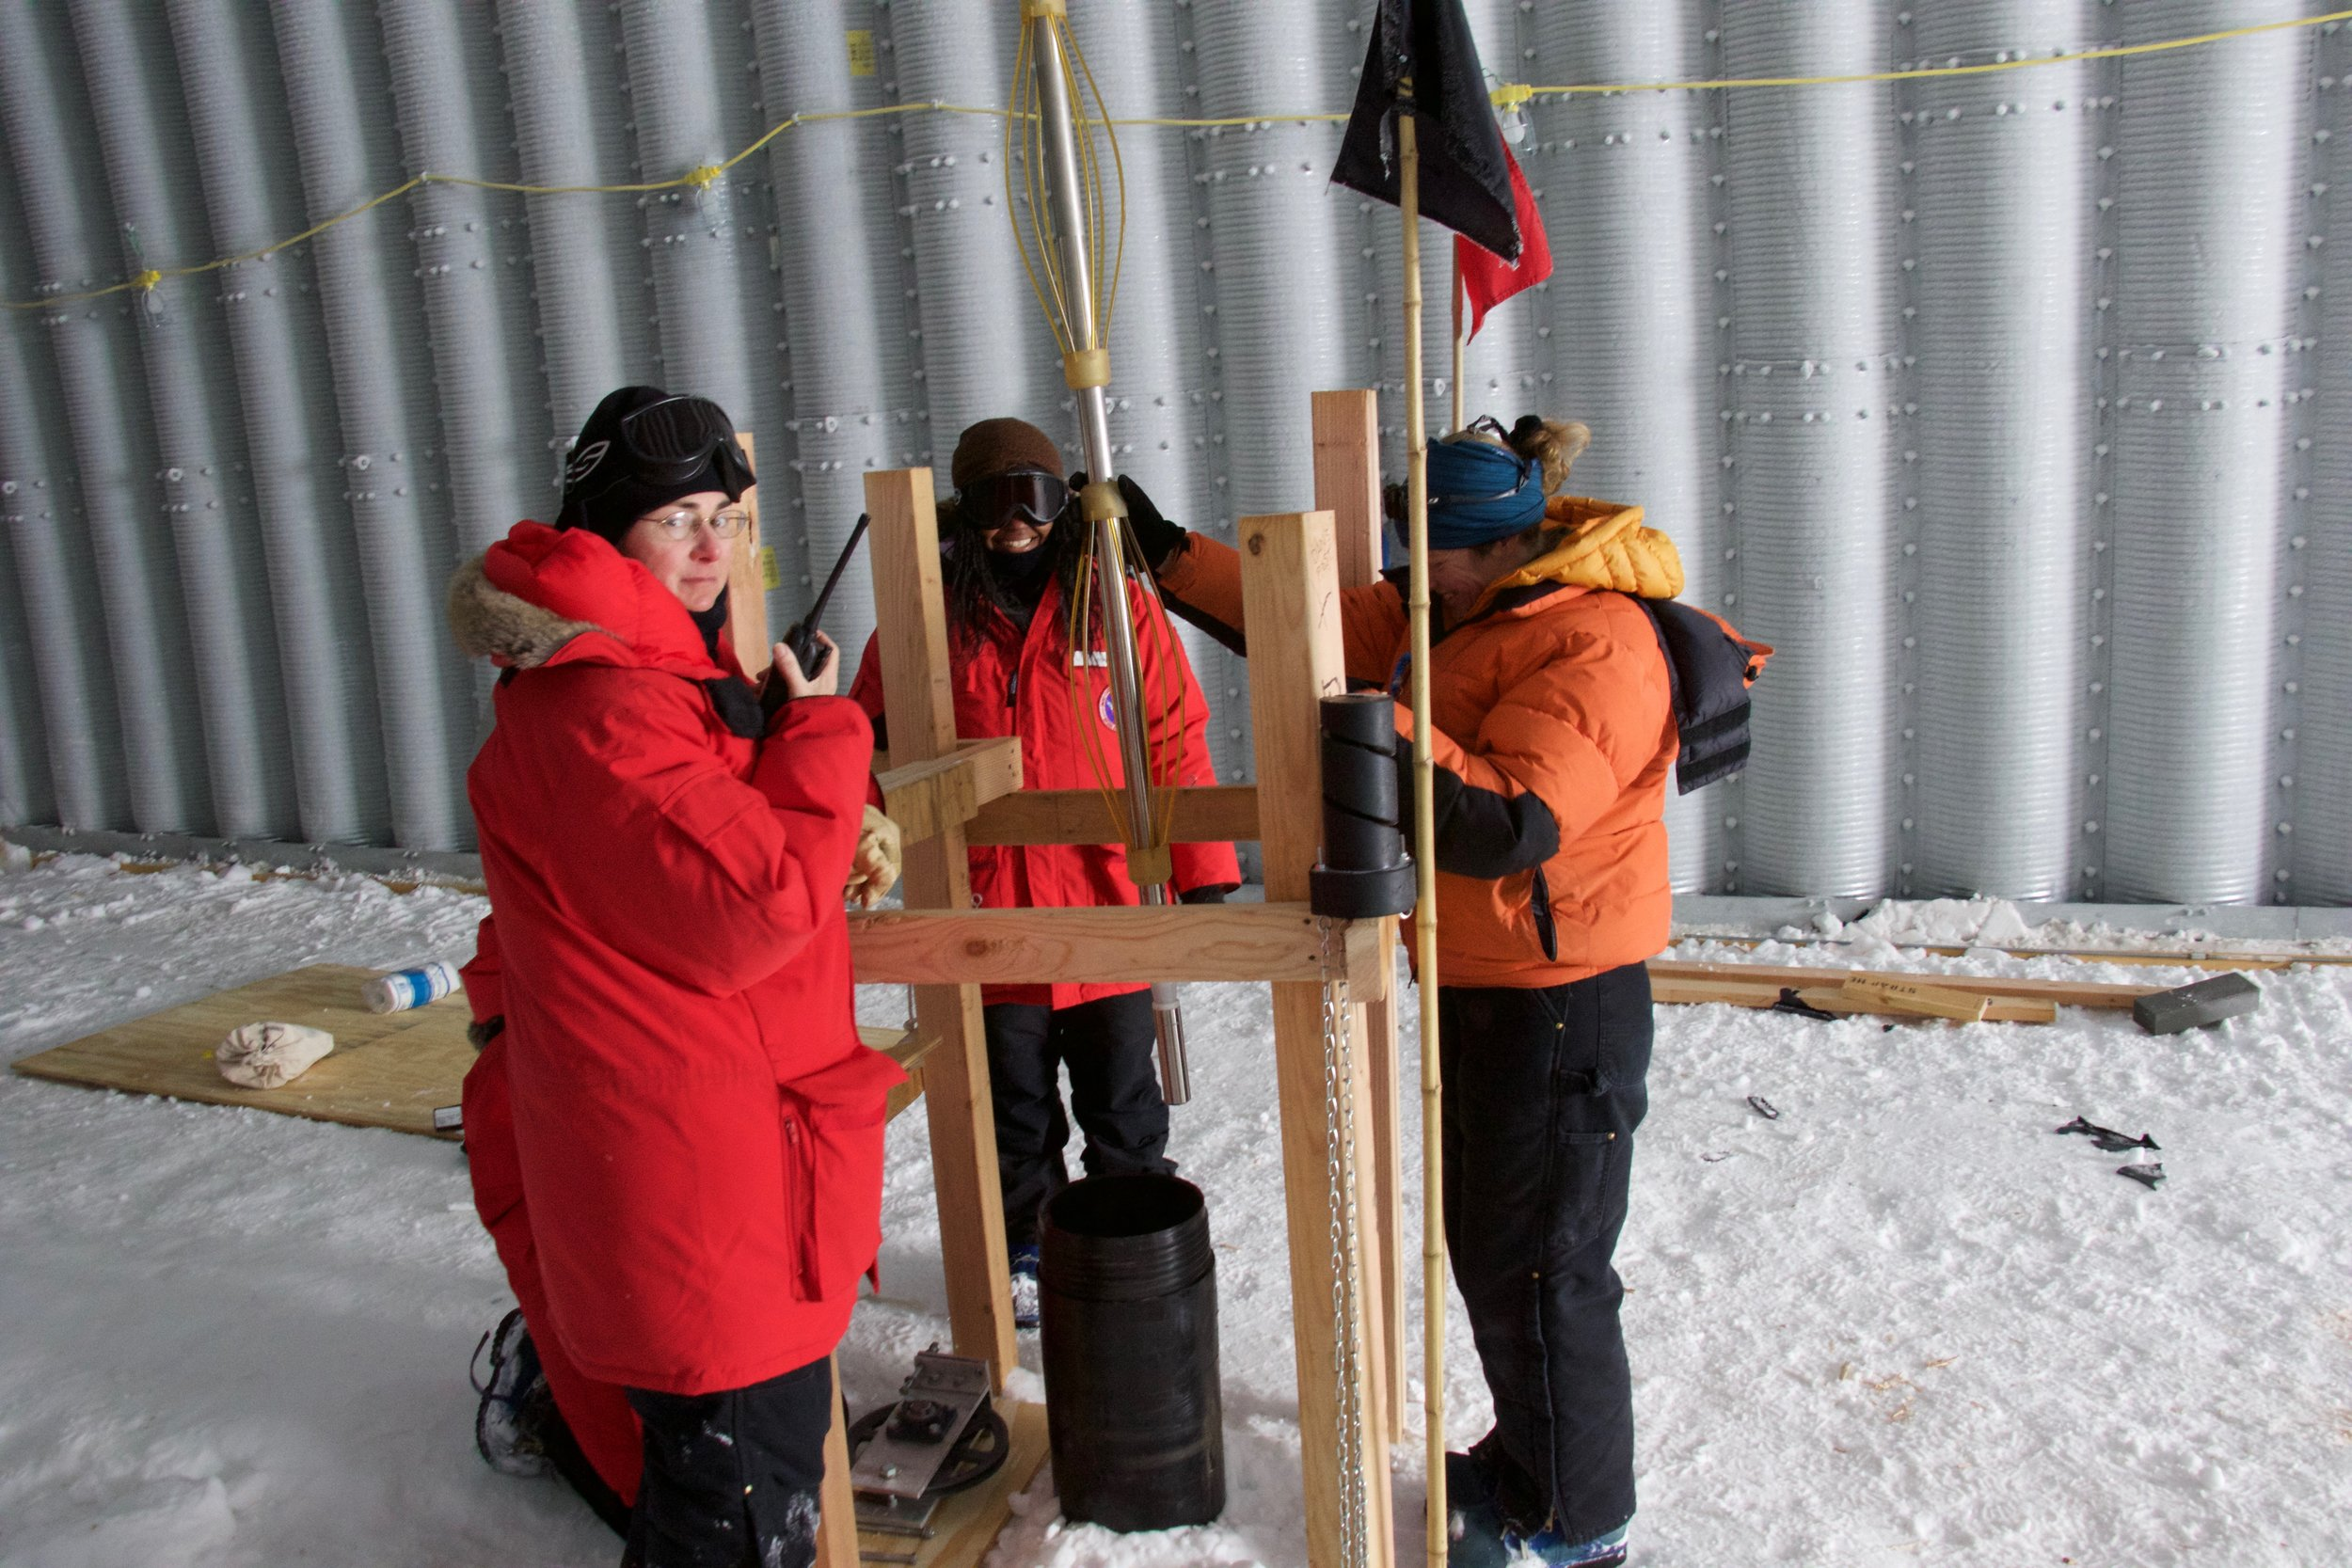 Inside the arch, Rachel, Anny, and Erin lower the Acoustic Televiewer (AKA Batwoman) into the borehole.